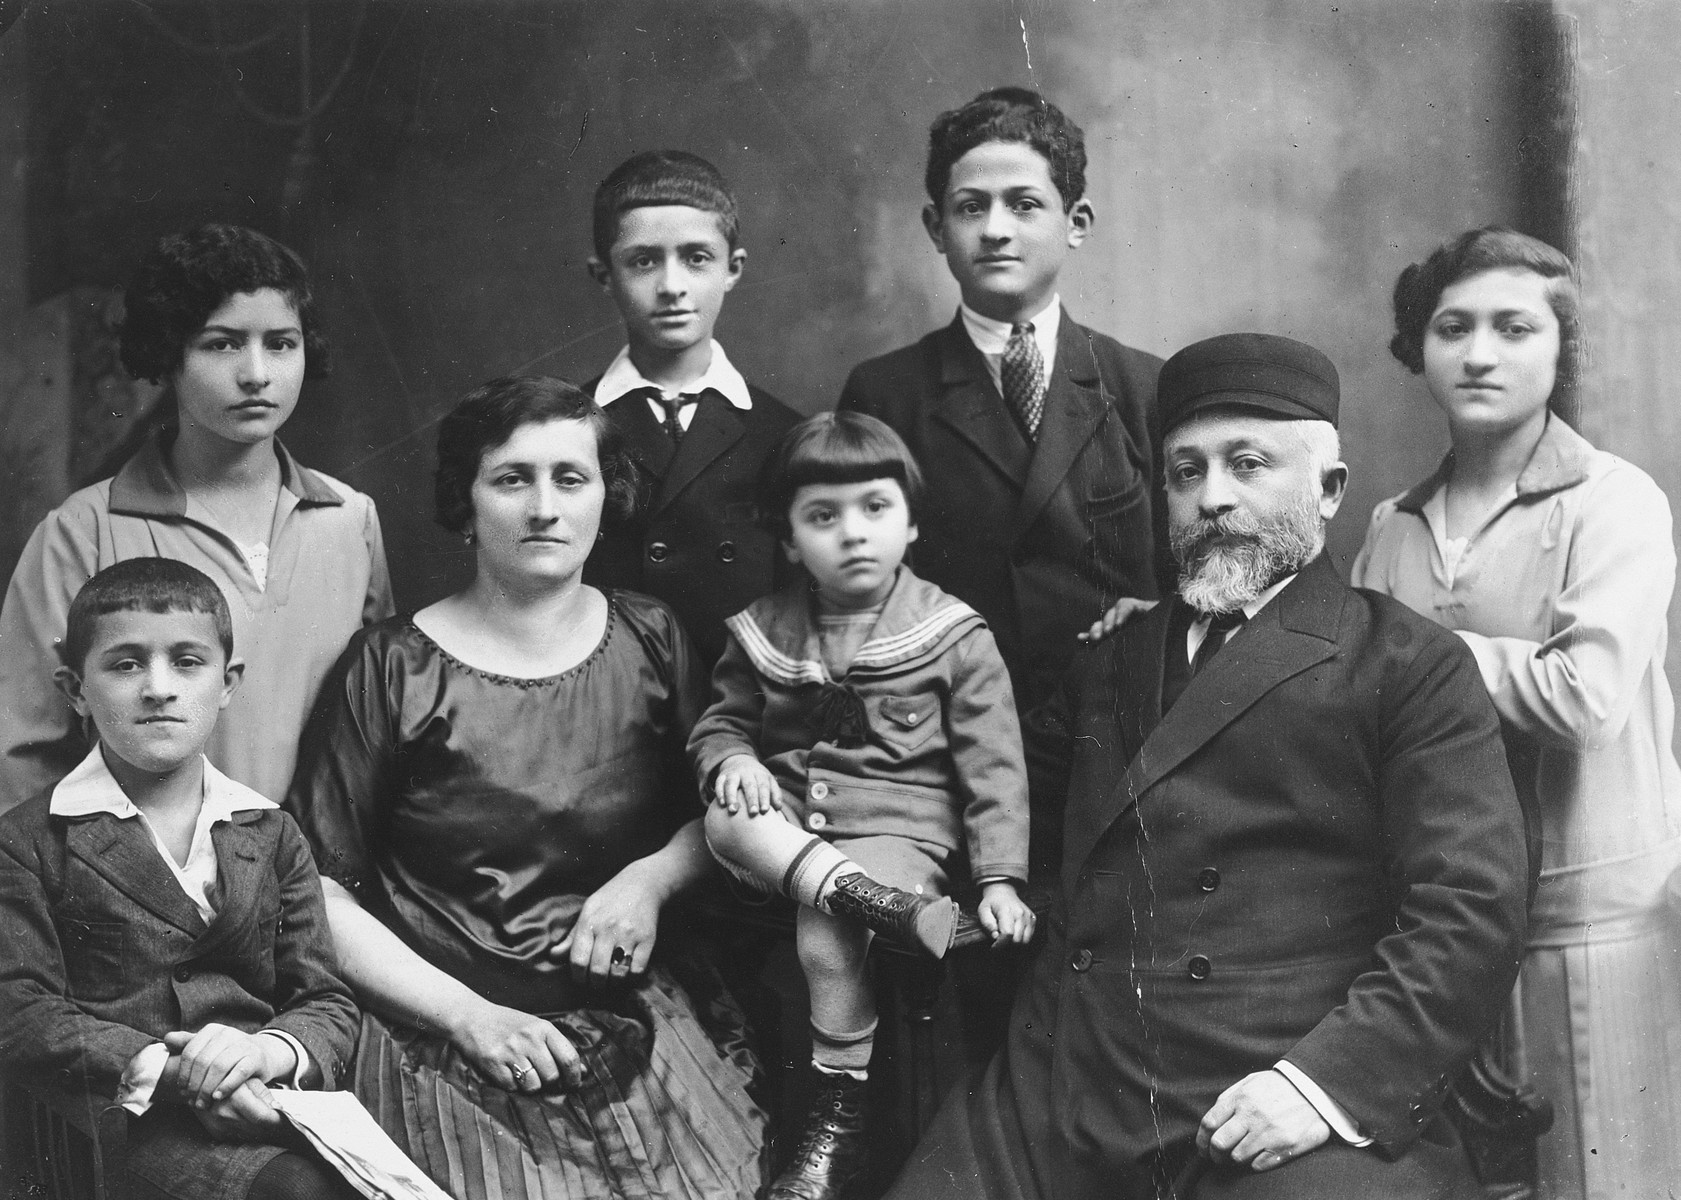 Group portrait of a Polish Jewish family on the occasion of a golden wedding anniversary of Fajga and Noech Bursztajn.  Pictured front row, left to right are Chaim, Perla Bursztajn Jakubowicz, Alter and Josek Jakubowicz.  Second row: Bina, Mojzesz, Ajzyk and Sura.  Josek, Ajzyk and Chaim died in the Lodz ghetto between May and November 1942.  The others probably perished in Chelmno or Auschwitz.